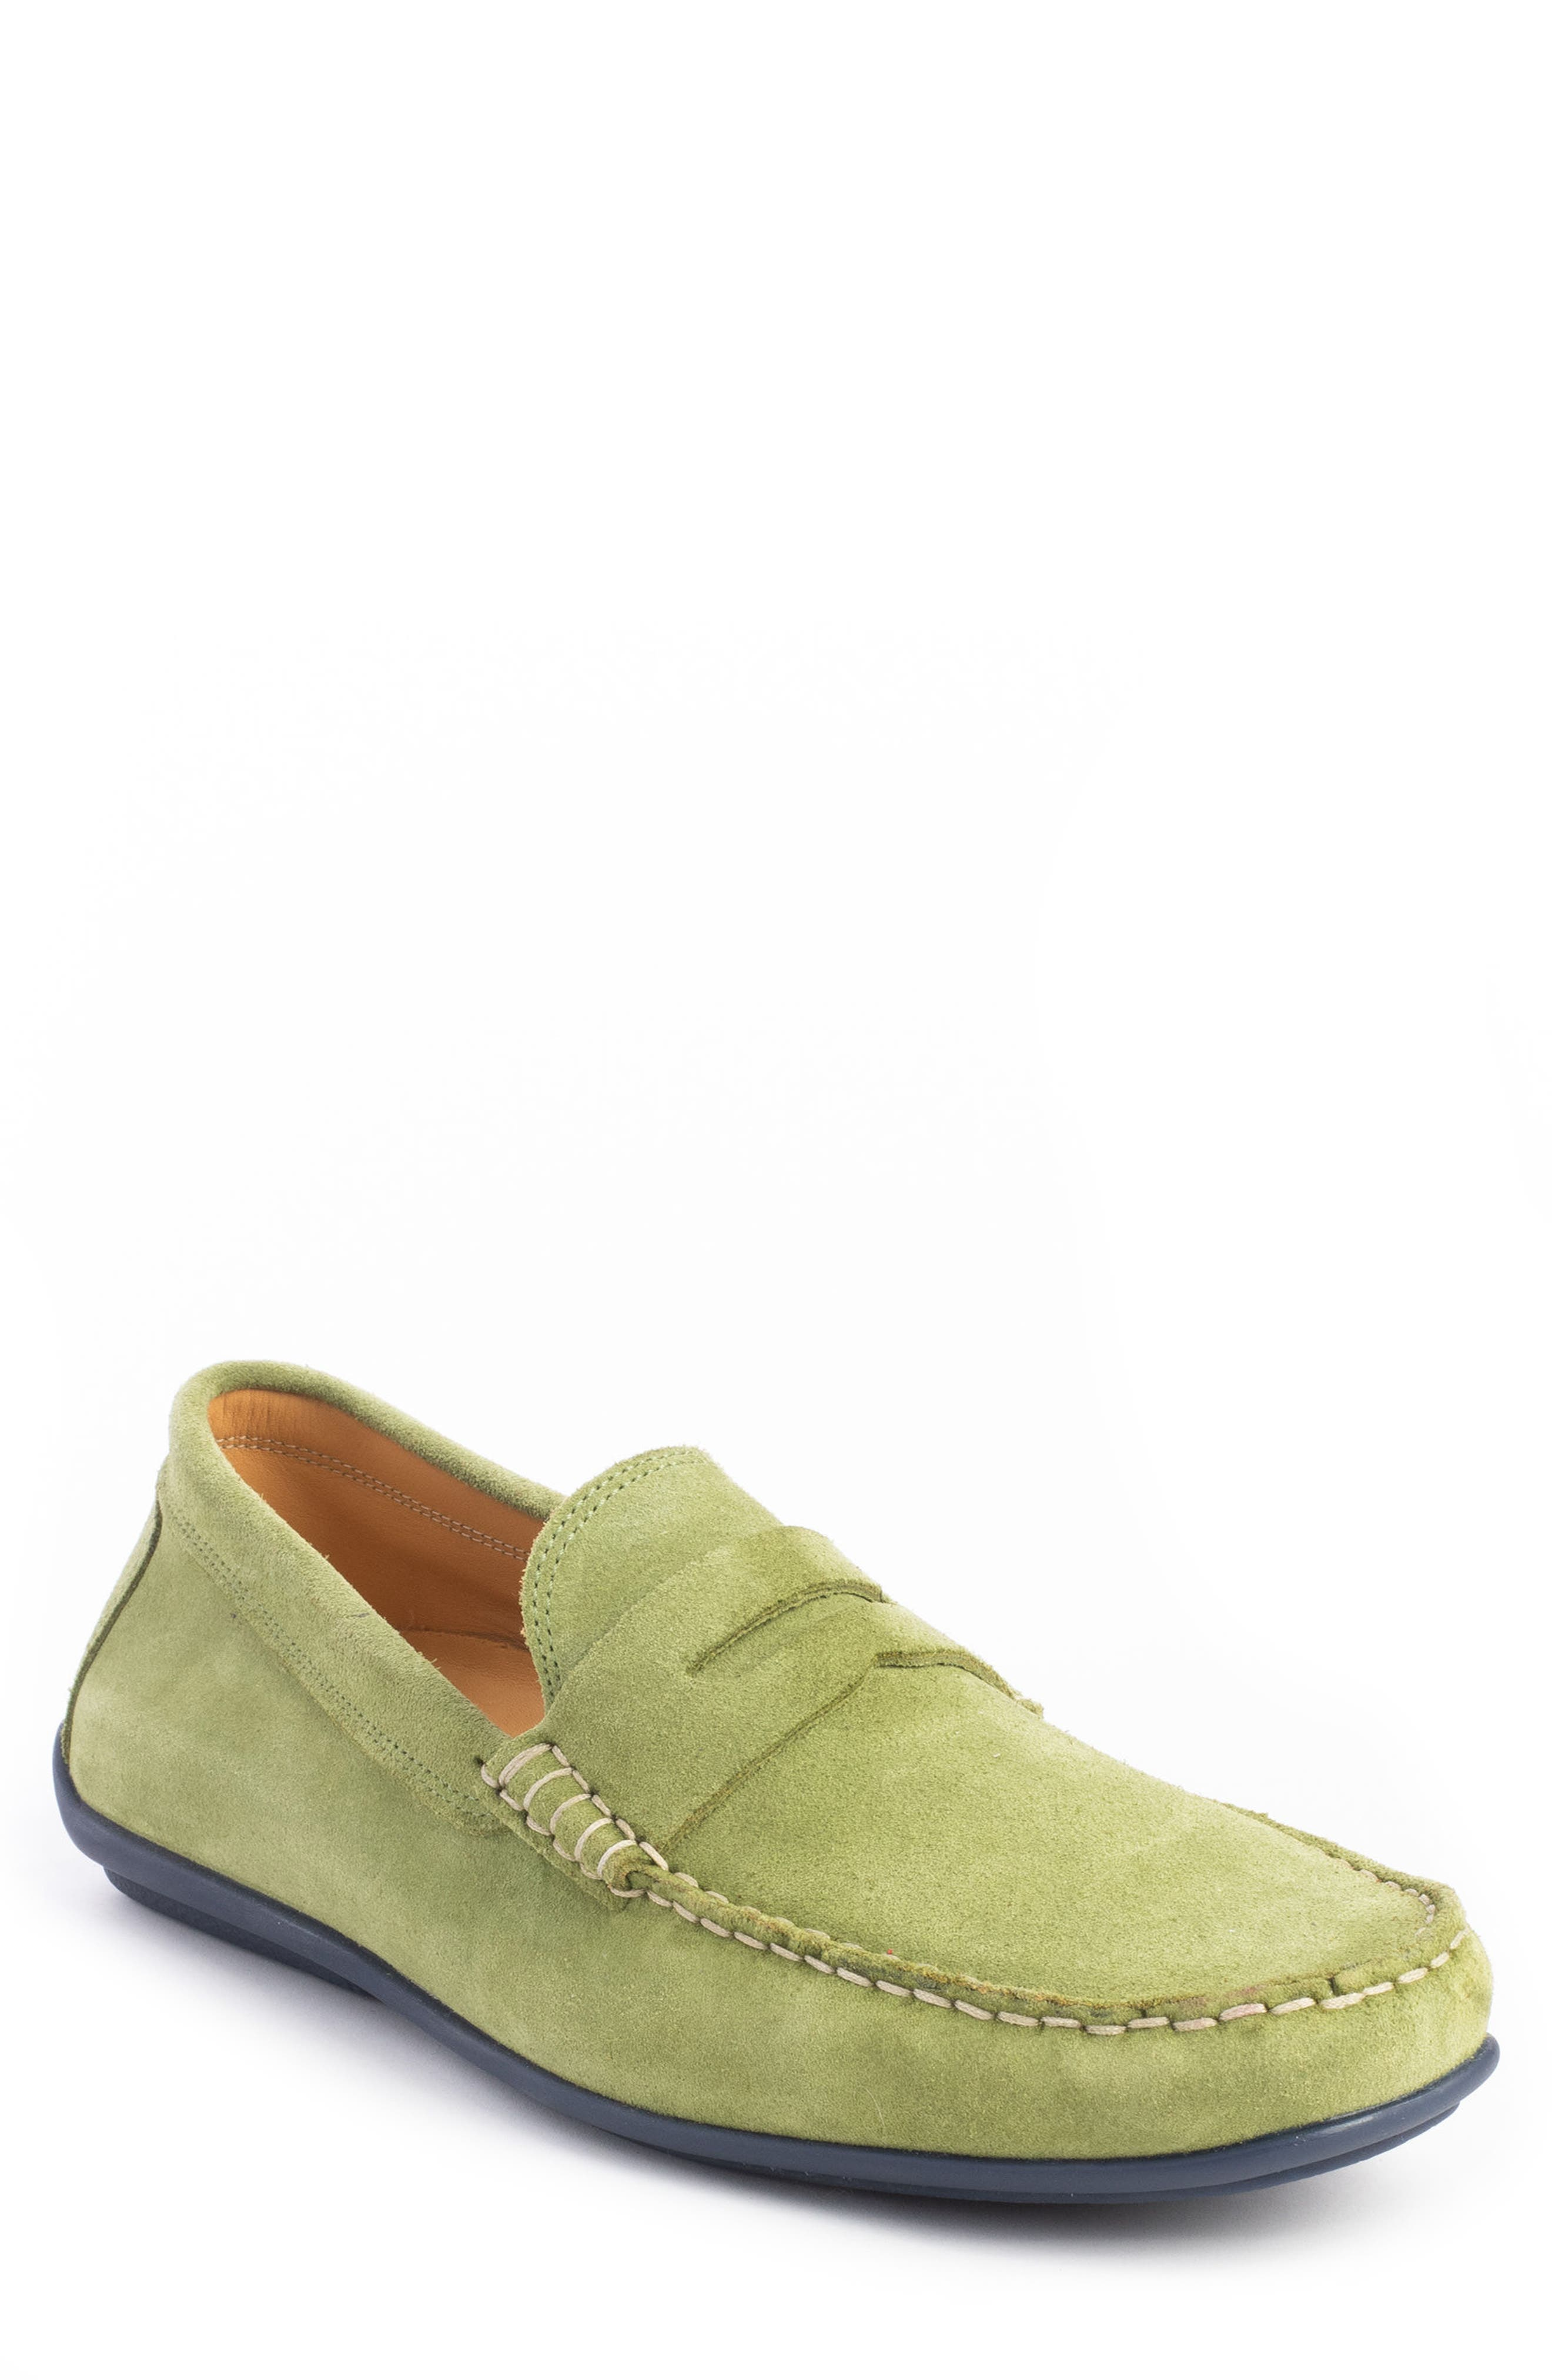 'Parkers' Penny Loafer,                         Main,                         color, SPRING GREEN